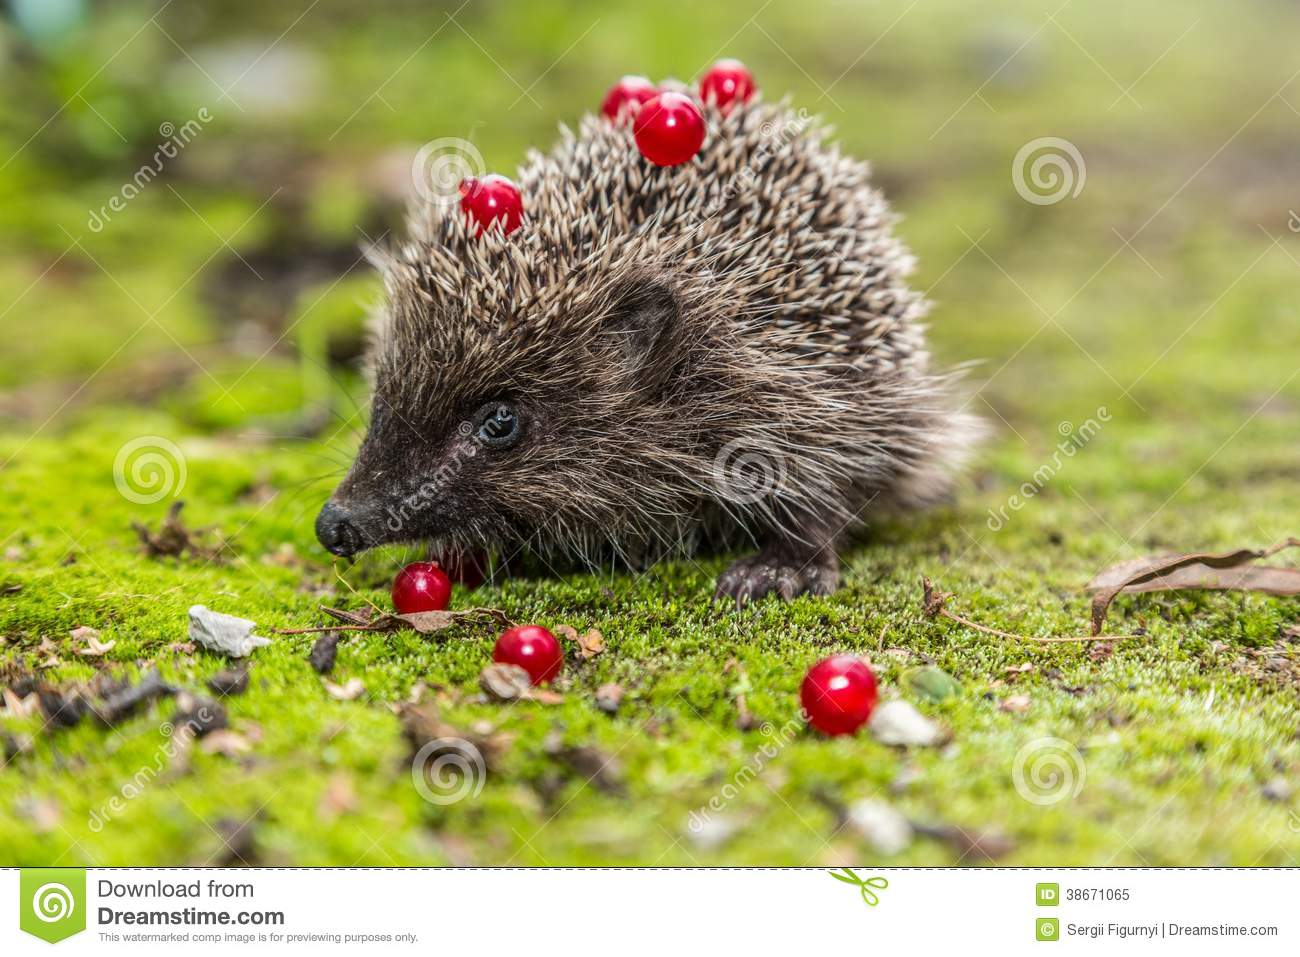 Hummingbird House Plans Wild Hedgehog Is Looking For A Food Royalty Free Stock